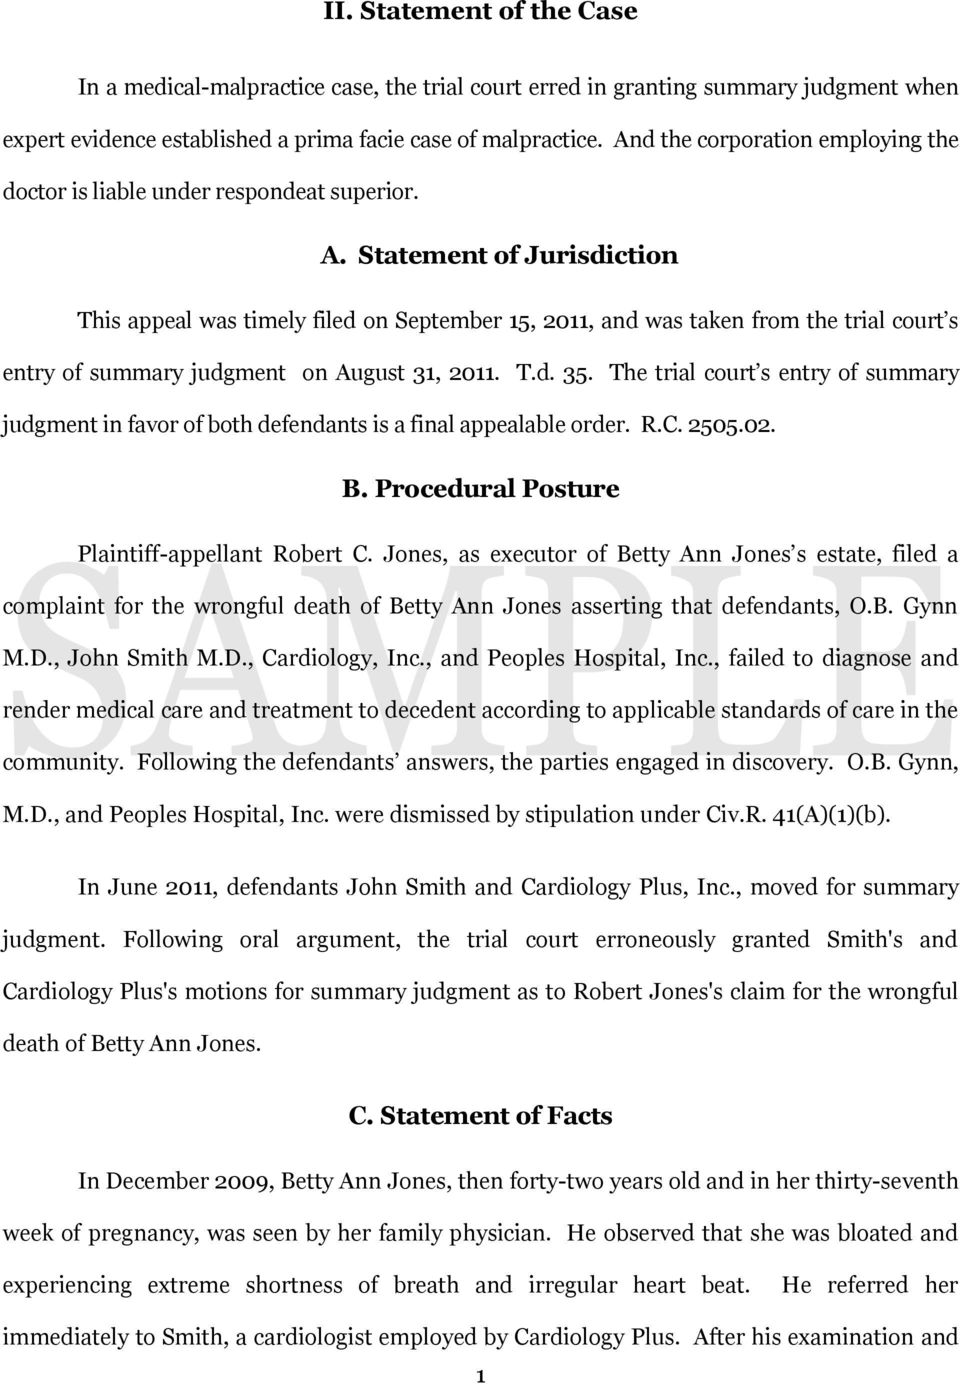 Statement of Jurisdiction This appeal was timely filed on September 15, 2011, and was taken from the trial court s entry of summary judgment on August 31, 2011. T.d. 35.